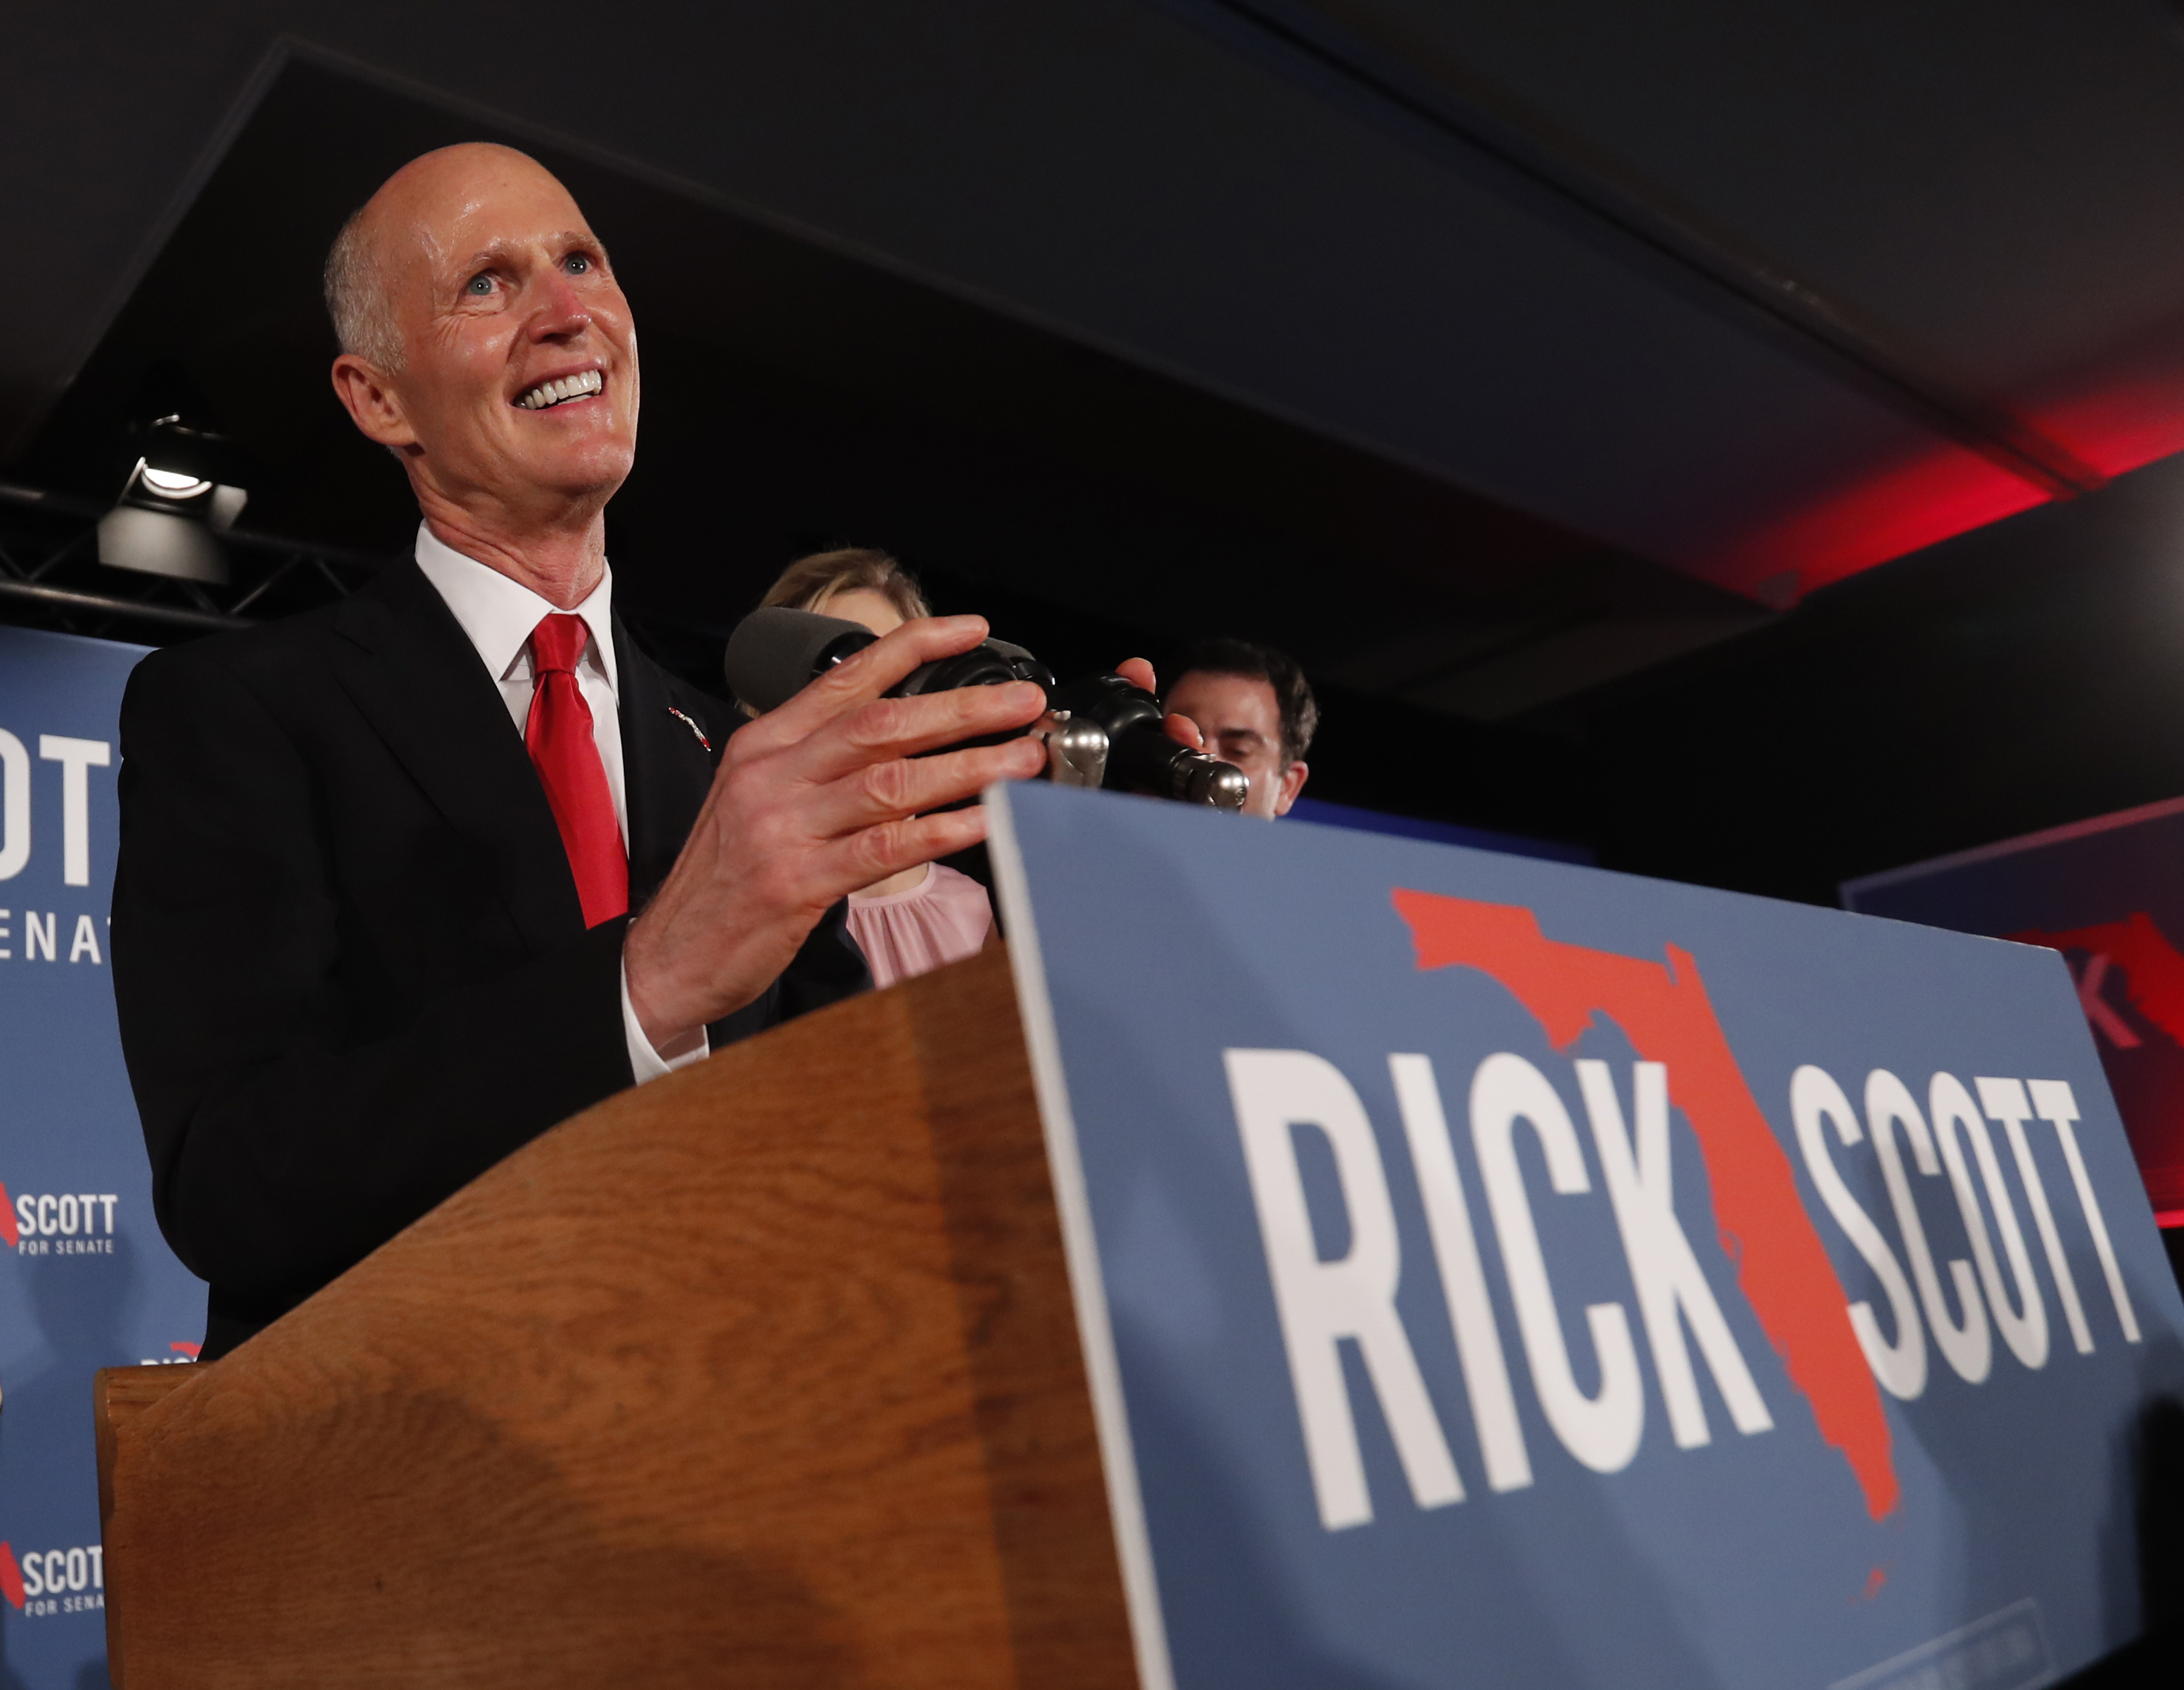 Not another Florida recount! This one should be smoother